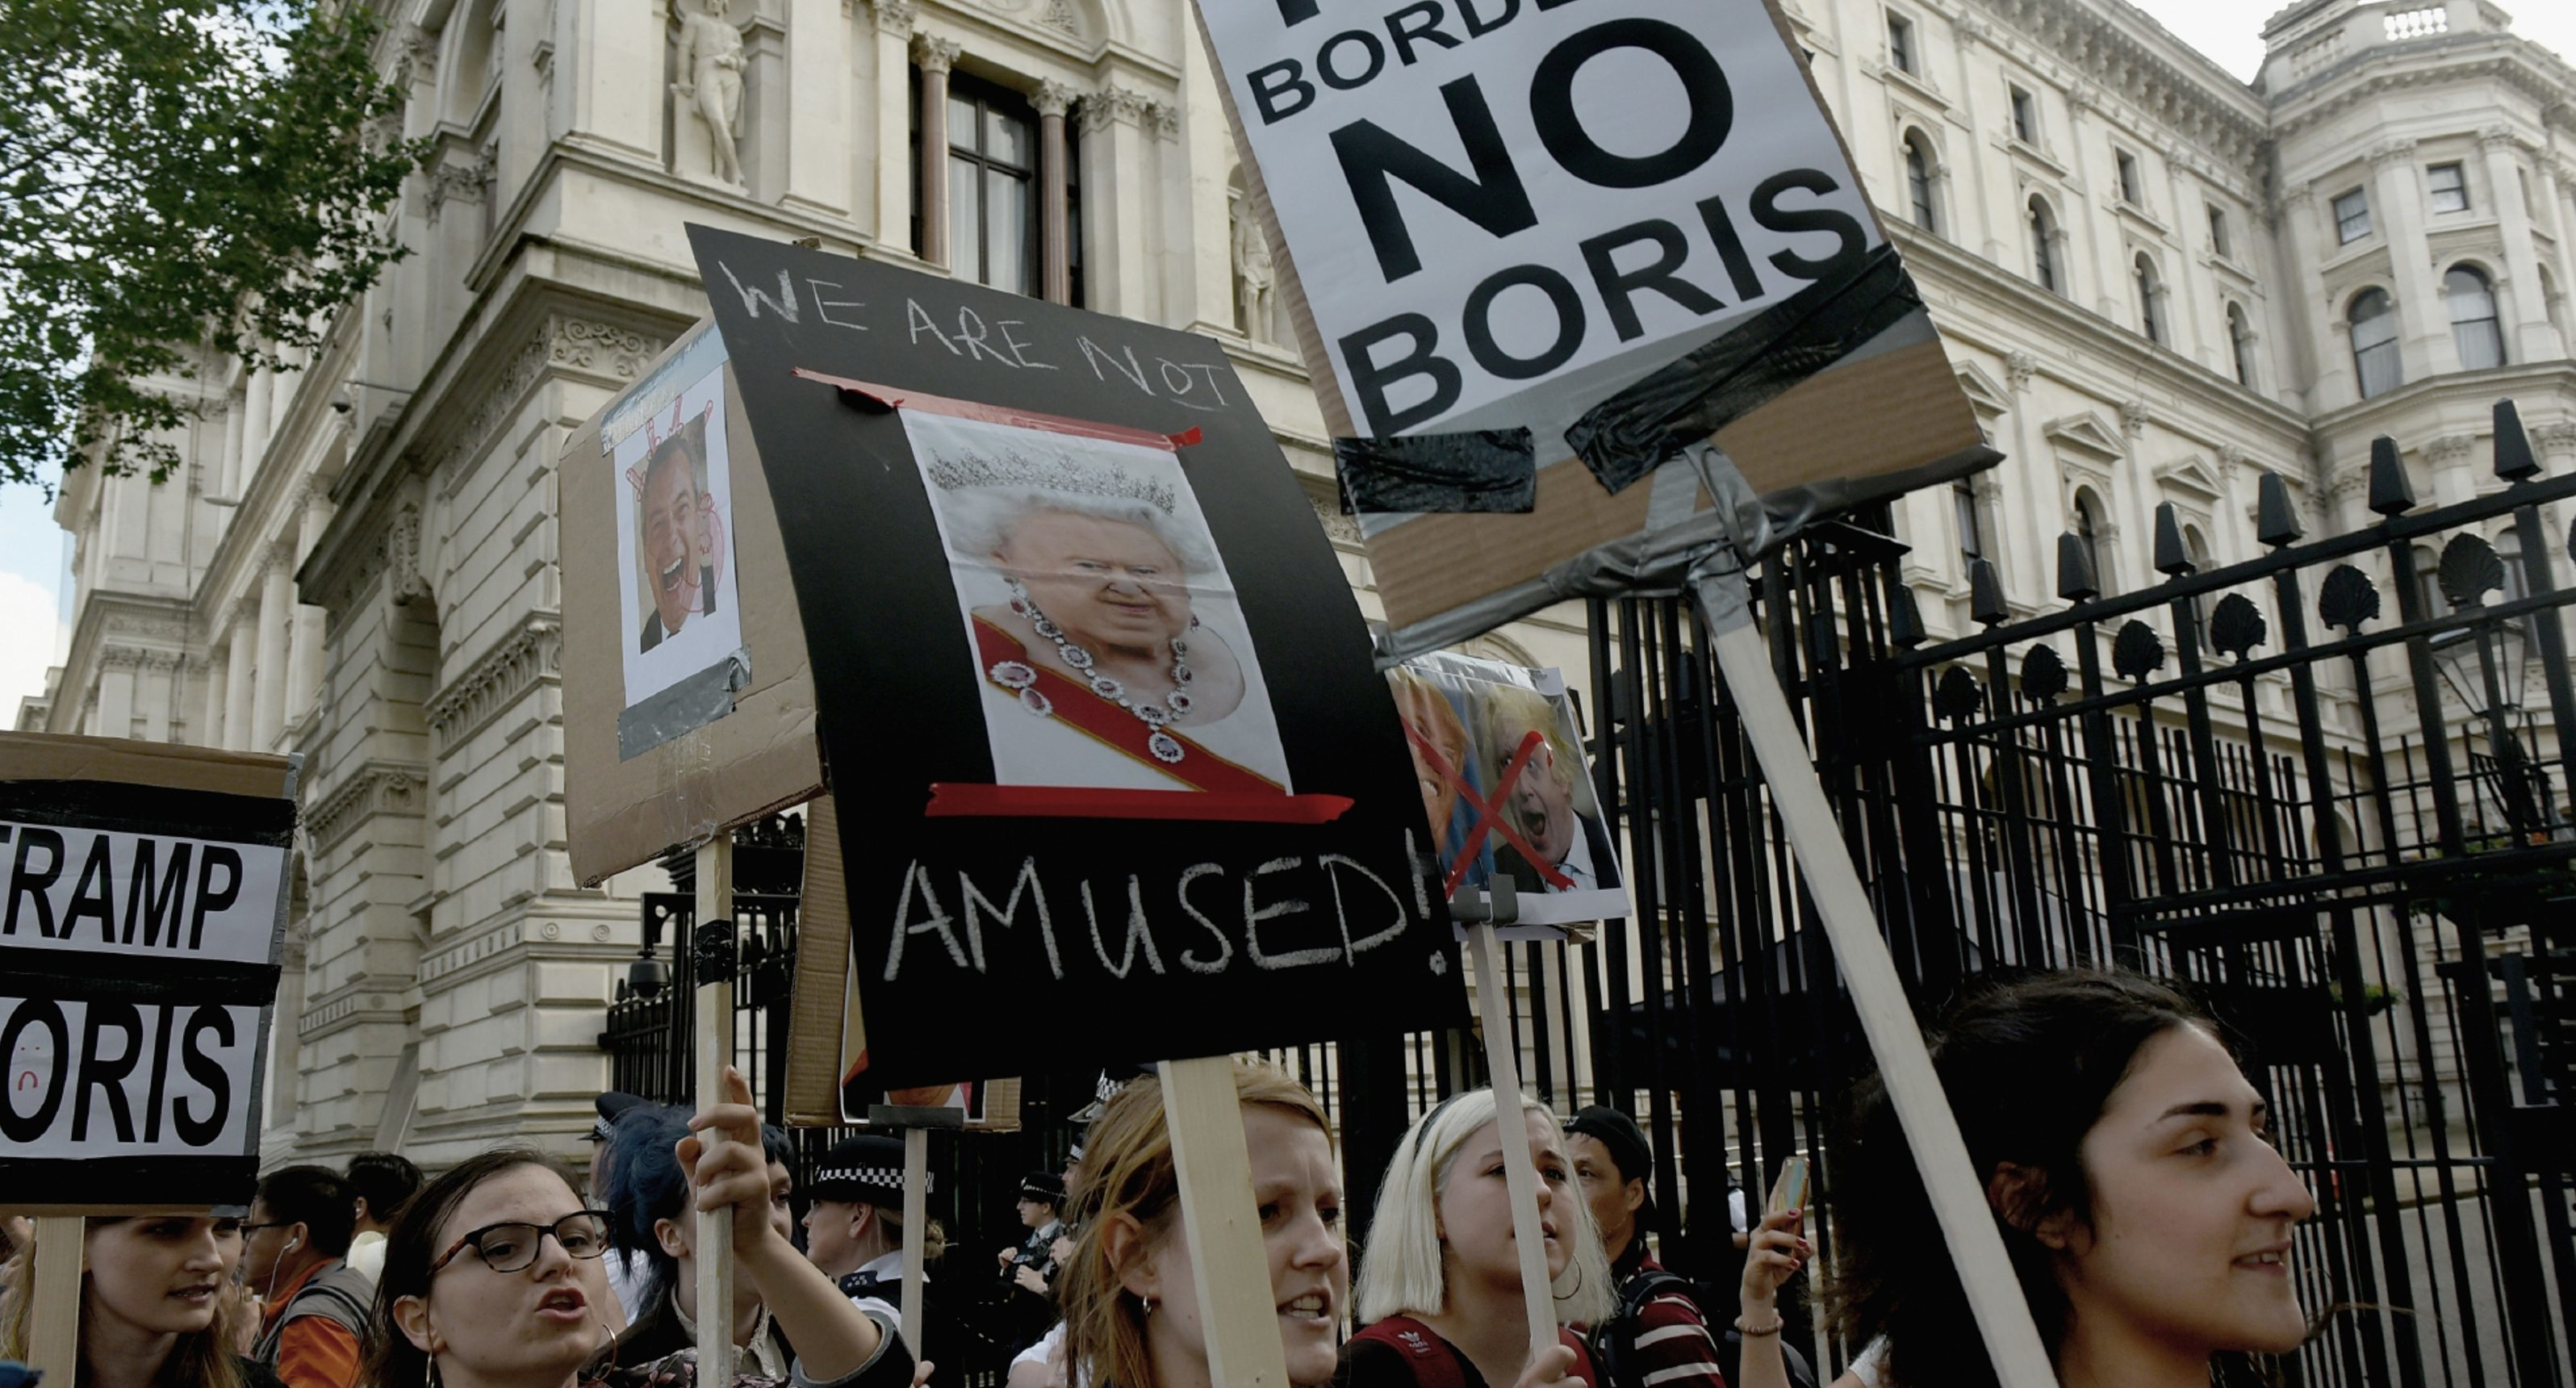 Young protesters demonstrate outside Downing Street.